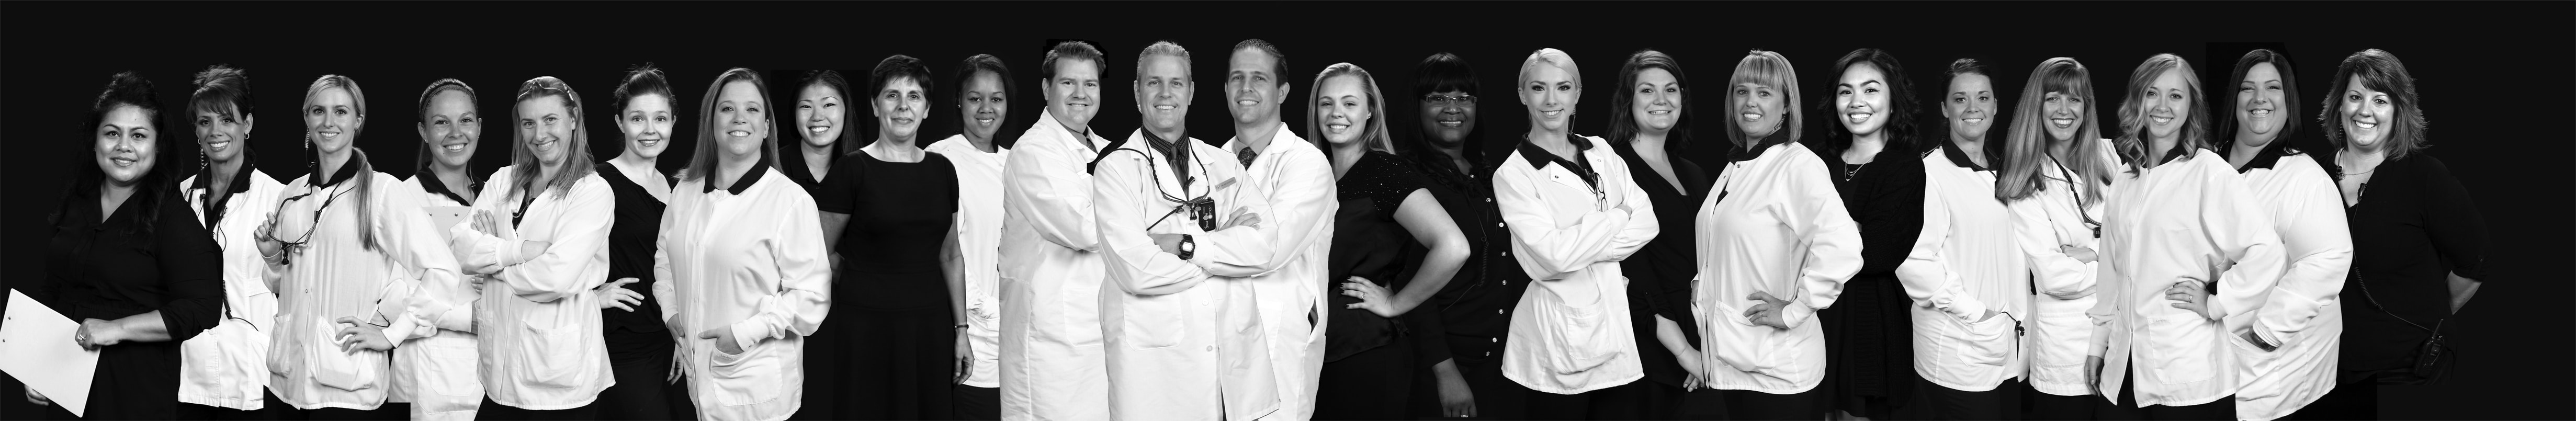 Meet the Team at the office of the #1 Rocklin dentist, Smile Quest Dental.